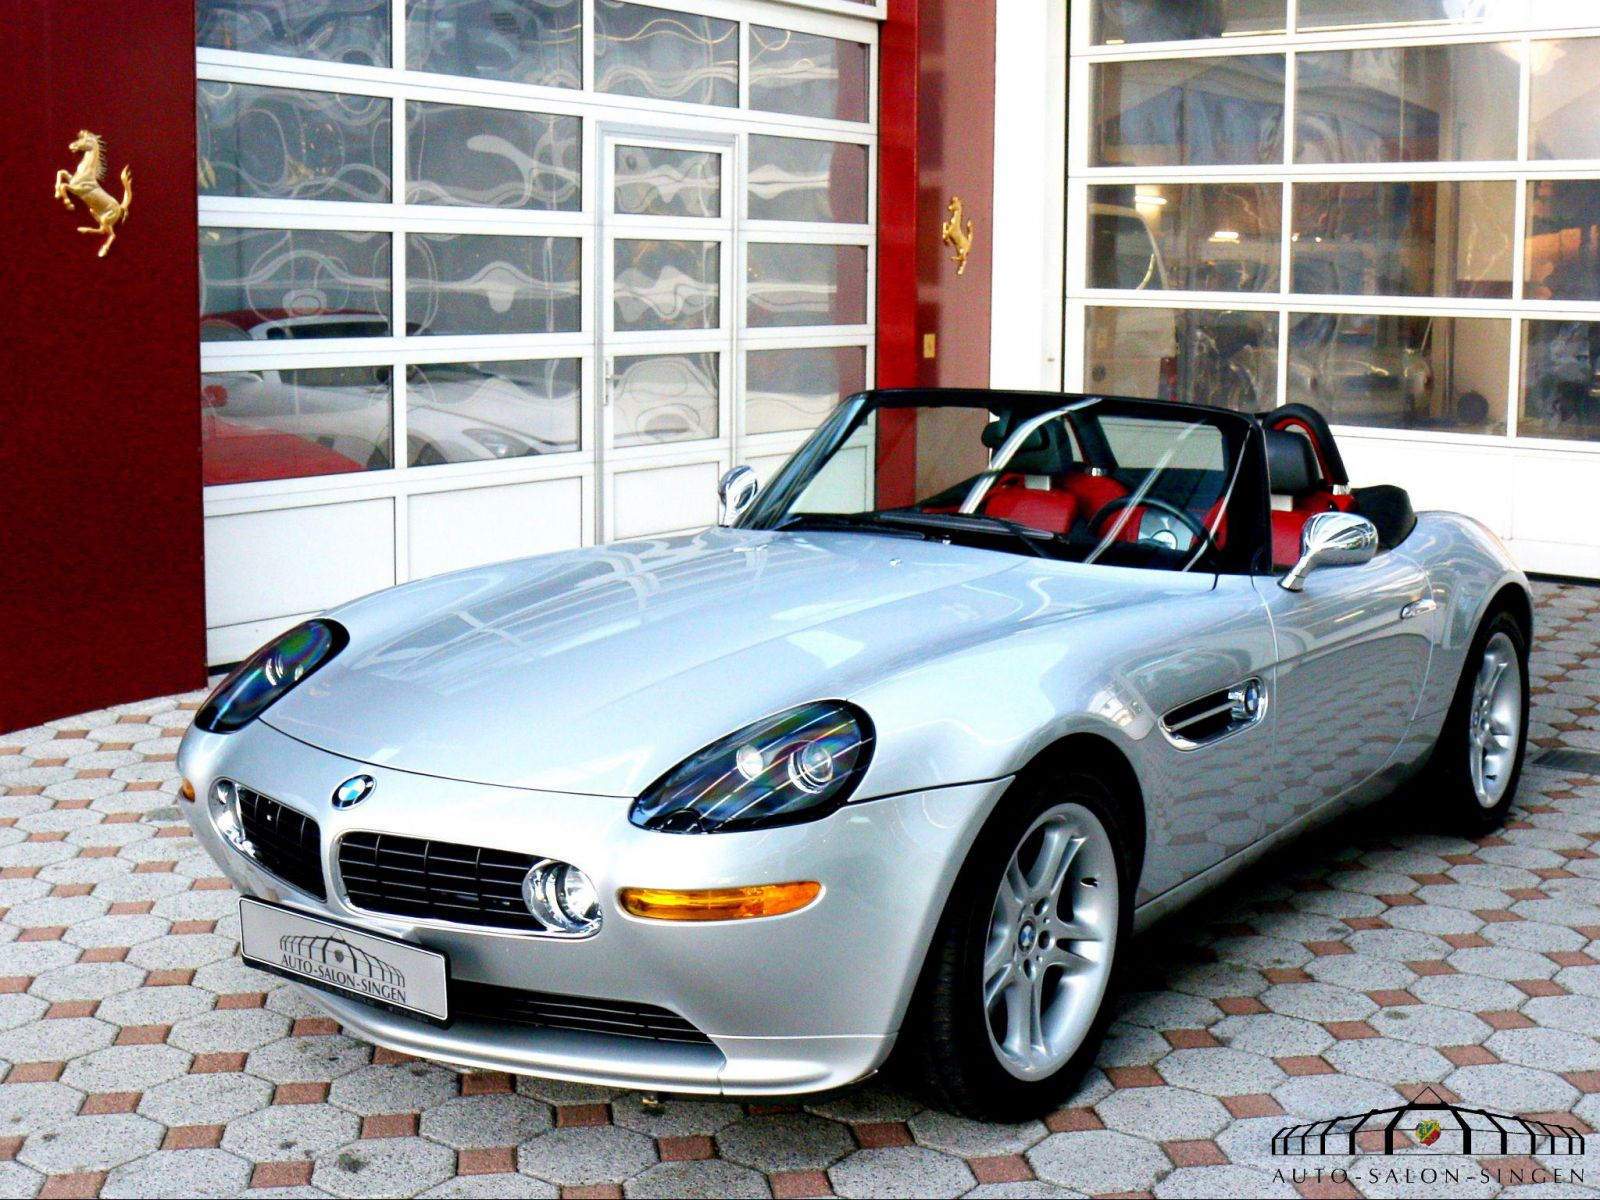 Bmw Z8 Roadster Auto Salon Singen